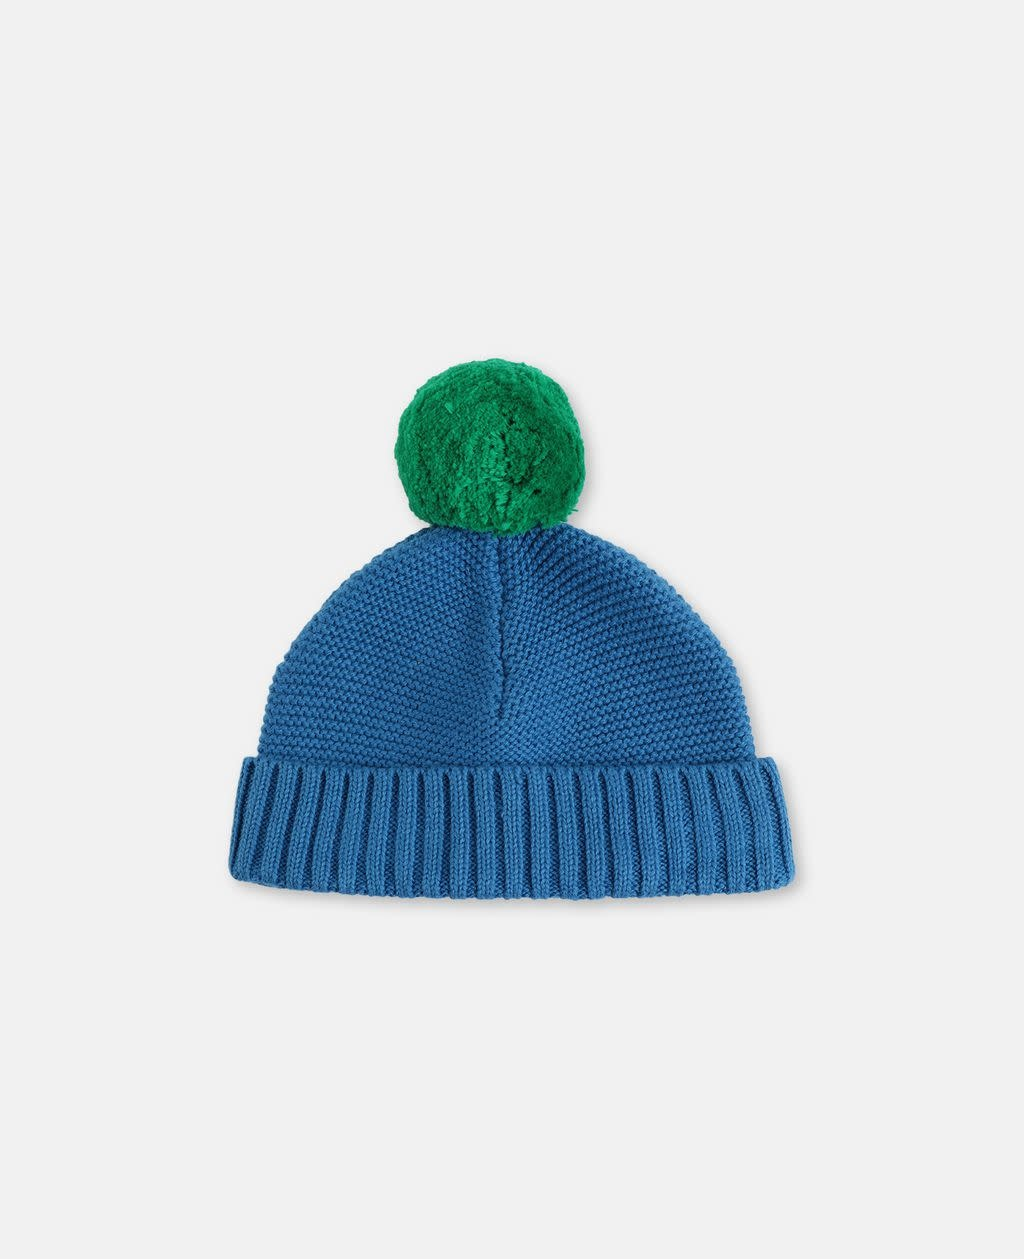 STELLA MCCARTNEY Knit Hat with Pom